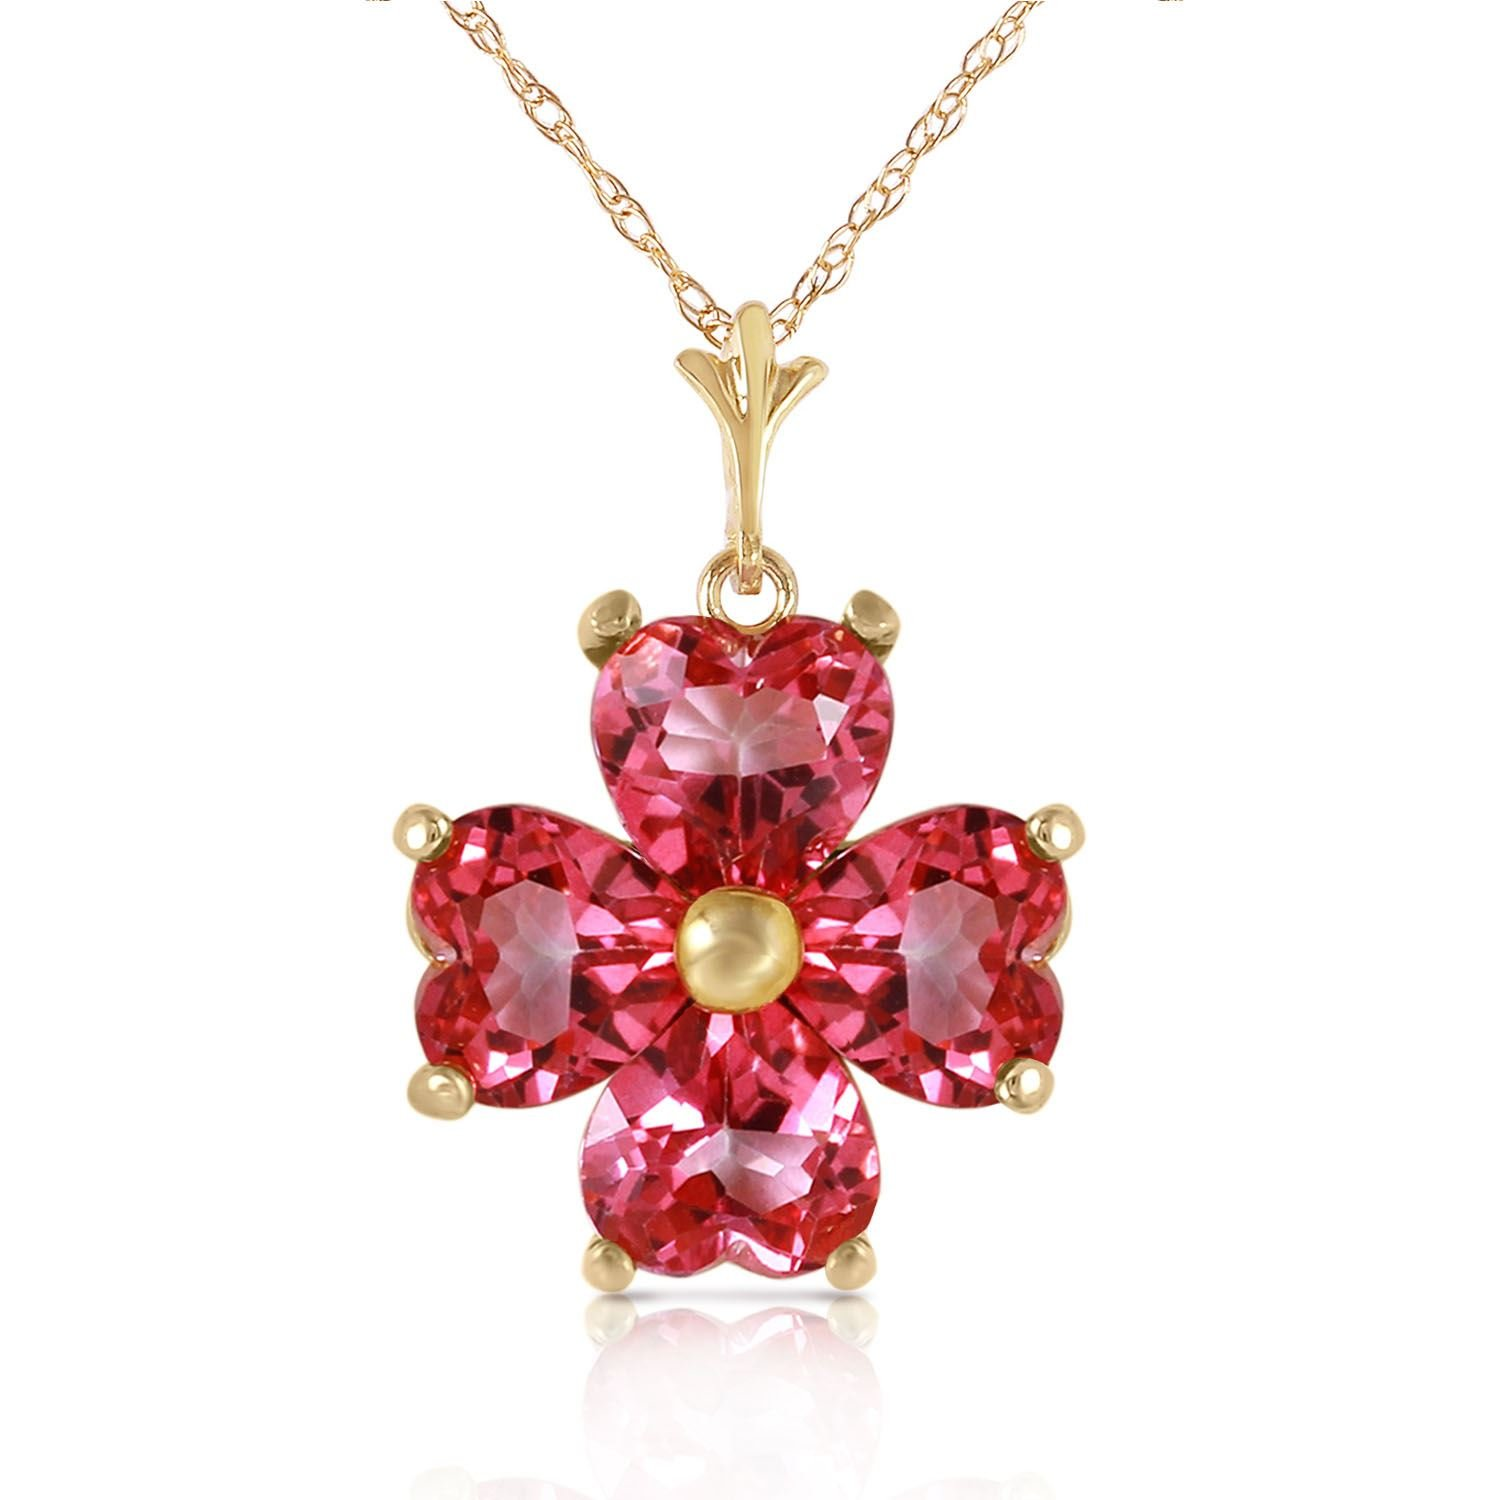 ALARRI 3.8 CTW 14K Solid Gold Orchid Love Pink Topaz Necklace with 18 Inch Chain Length